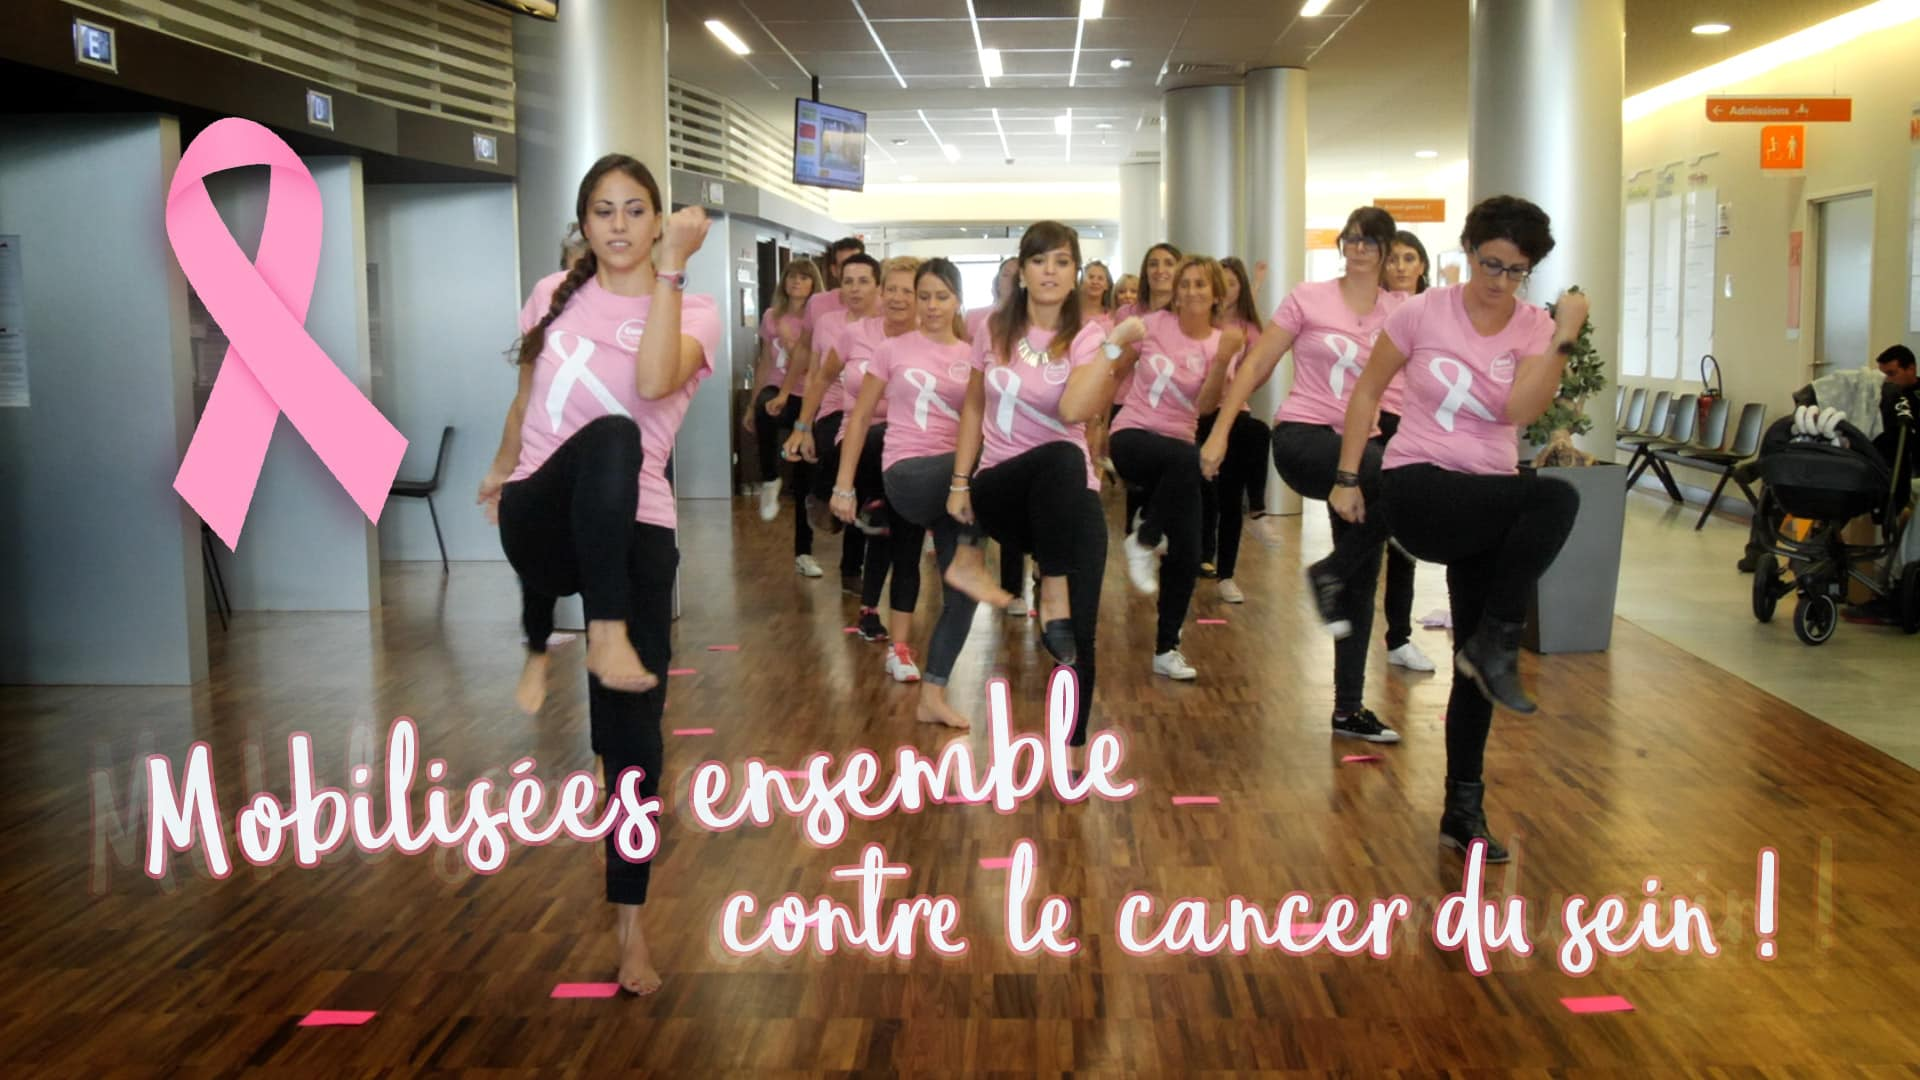 Cancer-du-sein-octobre-rose-bordeaux